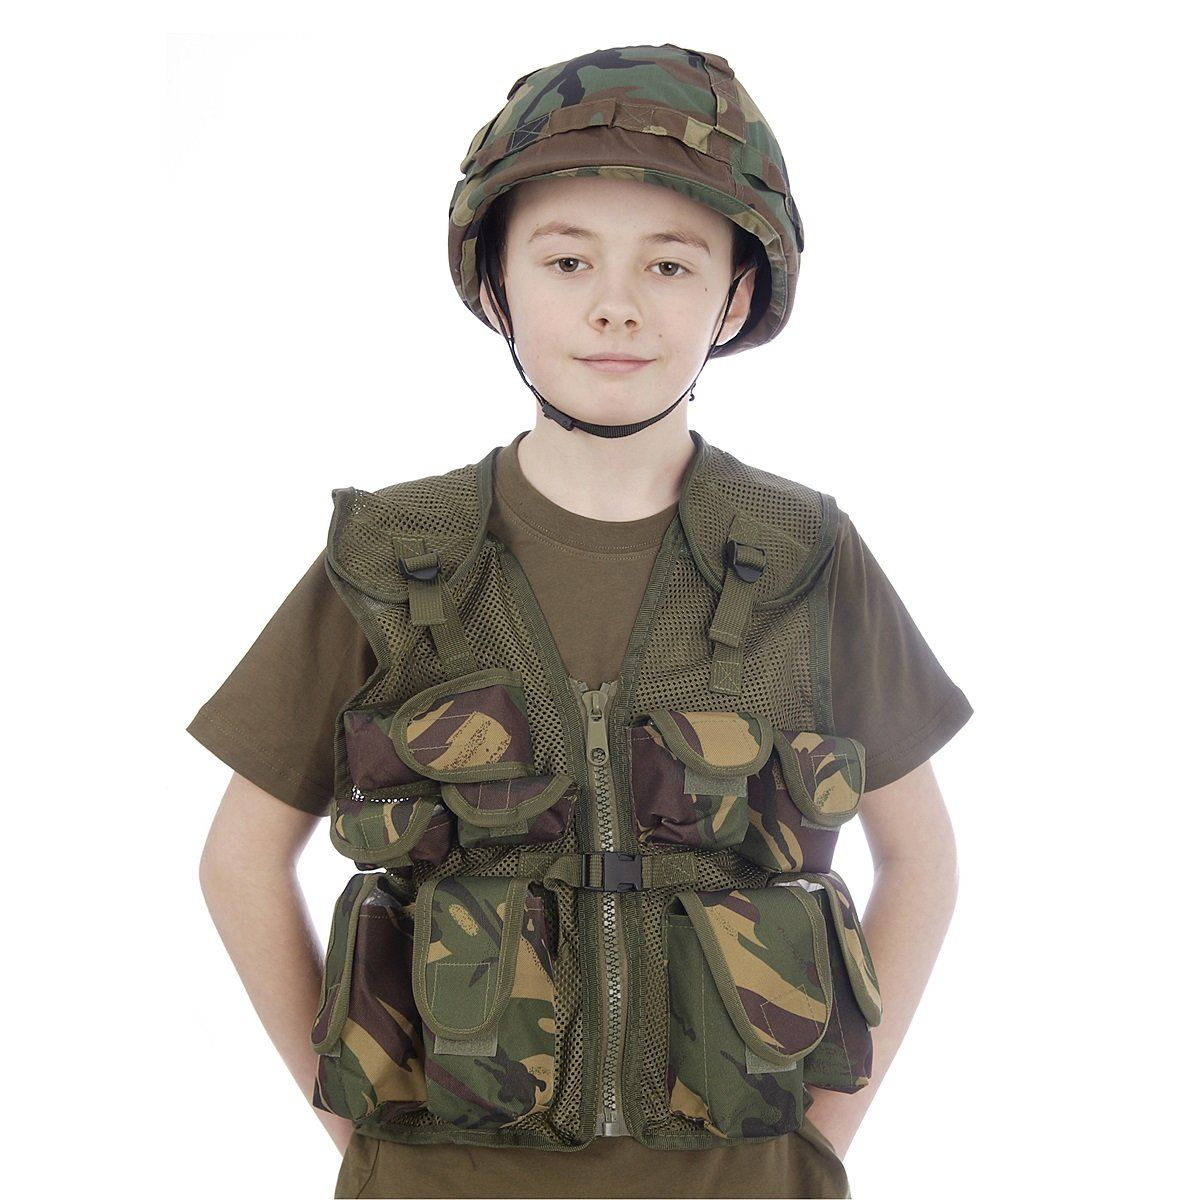 Kids Army Camouflage Helmet Amazon.co.uk Clothing Army